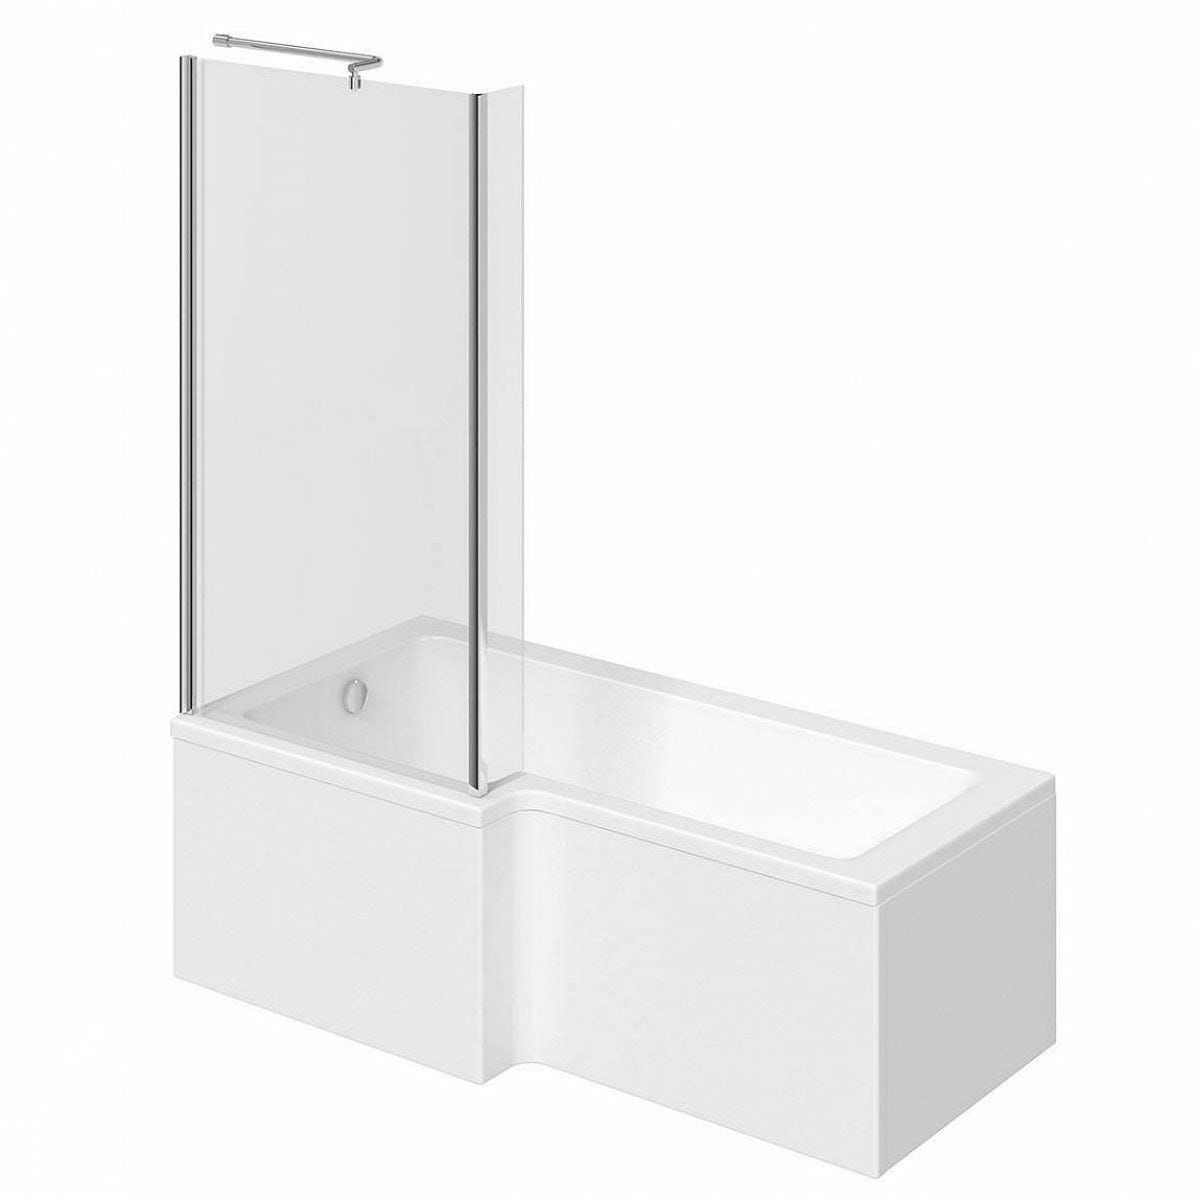 Clarity L shaped left handed shower bath with 5mm shower screen